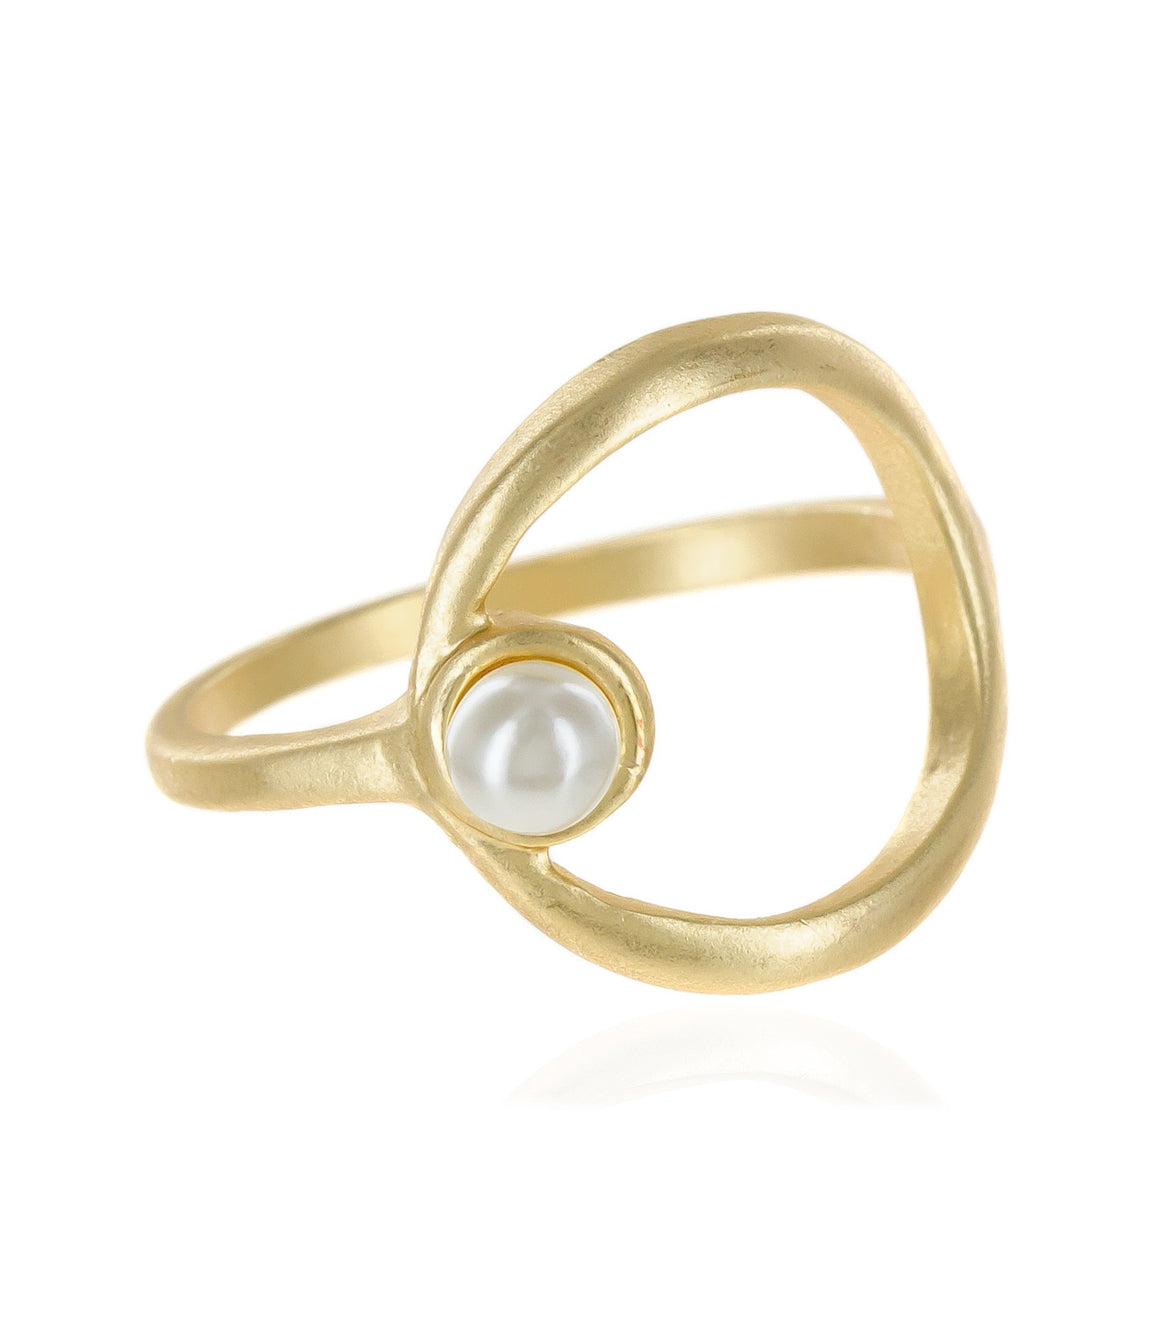 Round open cut ring with pearl accent